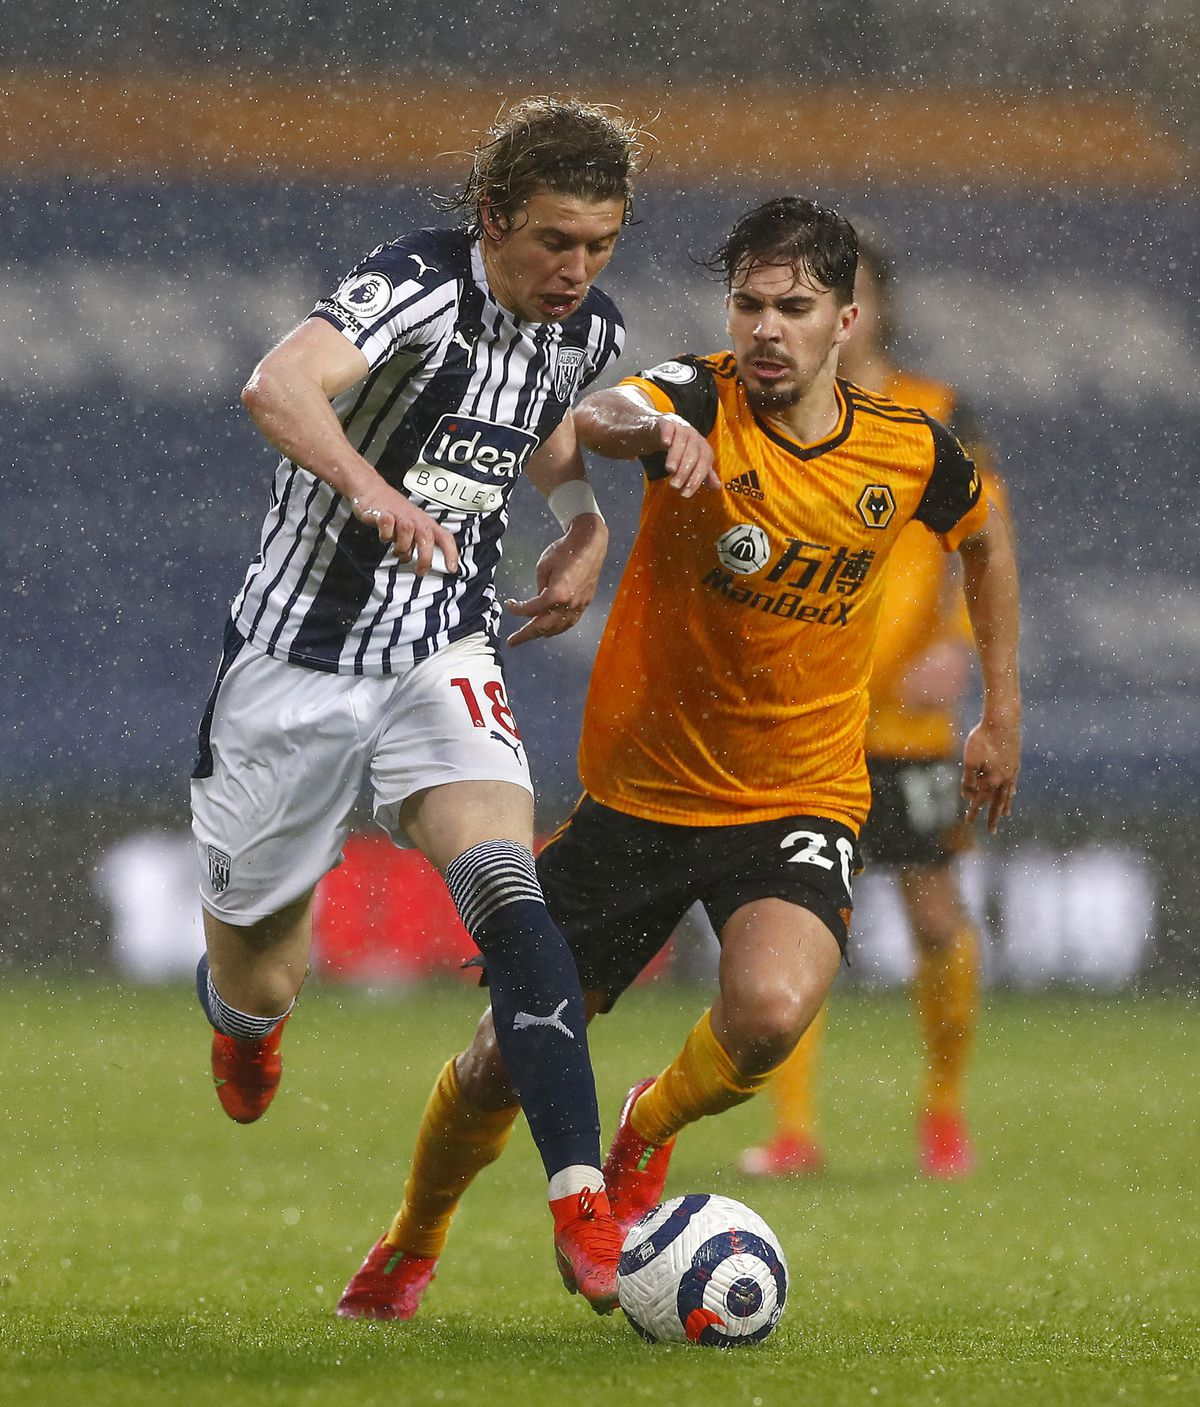 """West Bromwich Albion's Conor Gallagher (left) and Wolverhampton Wanderers' Vitinha during the Premier League match at The Hawthorns, West Bromwich. Issue date: Monday May 3, 2021. PA Photo. See PA story SOCCER West Brom. Photo credit should read: Jason Cairnduff/PA Wire. ..RESTRICTIONS: EDITORIAL USE ONLY No use with unauthorised audio, video, data, fixture lists, club/league logos or """"live"""" services. Online in-match use limited to 120 images, no video emulation. No use in betting, games or single club/league/player publications.."""